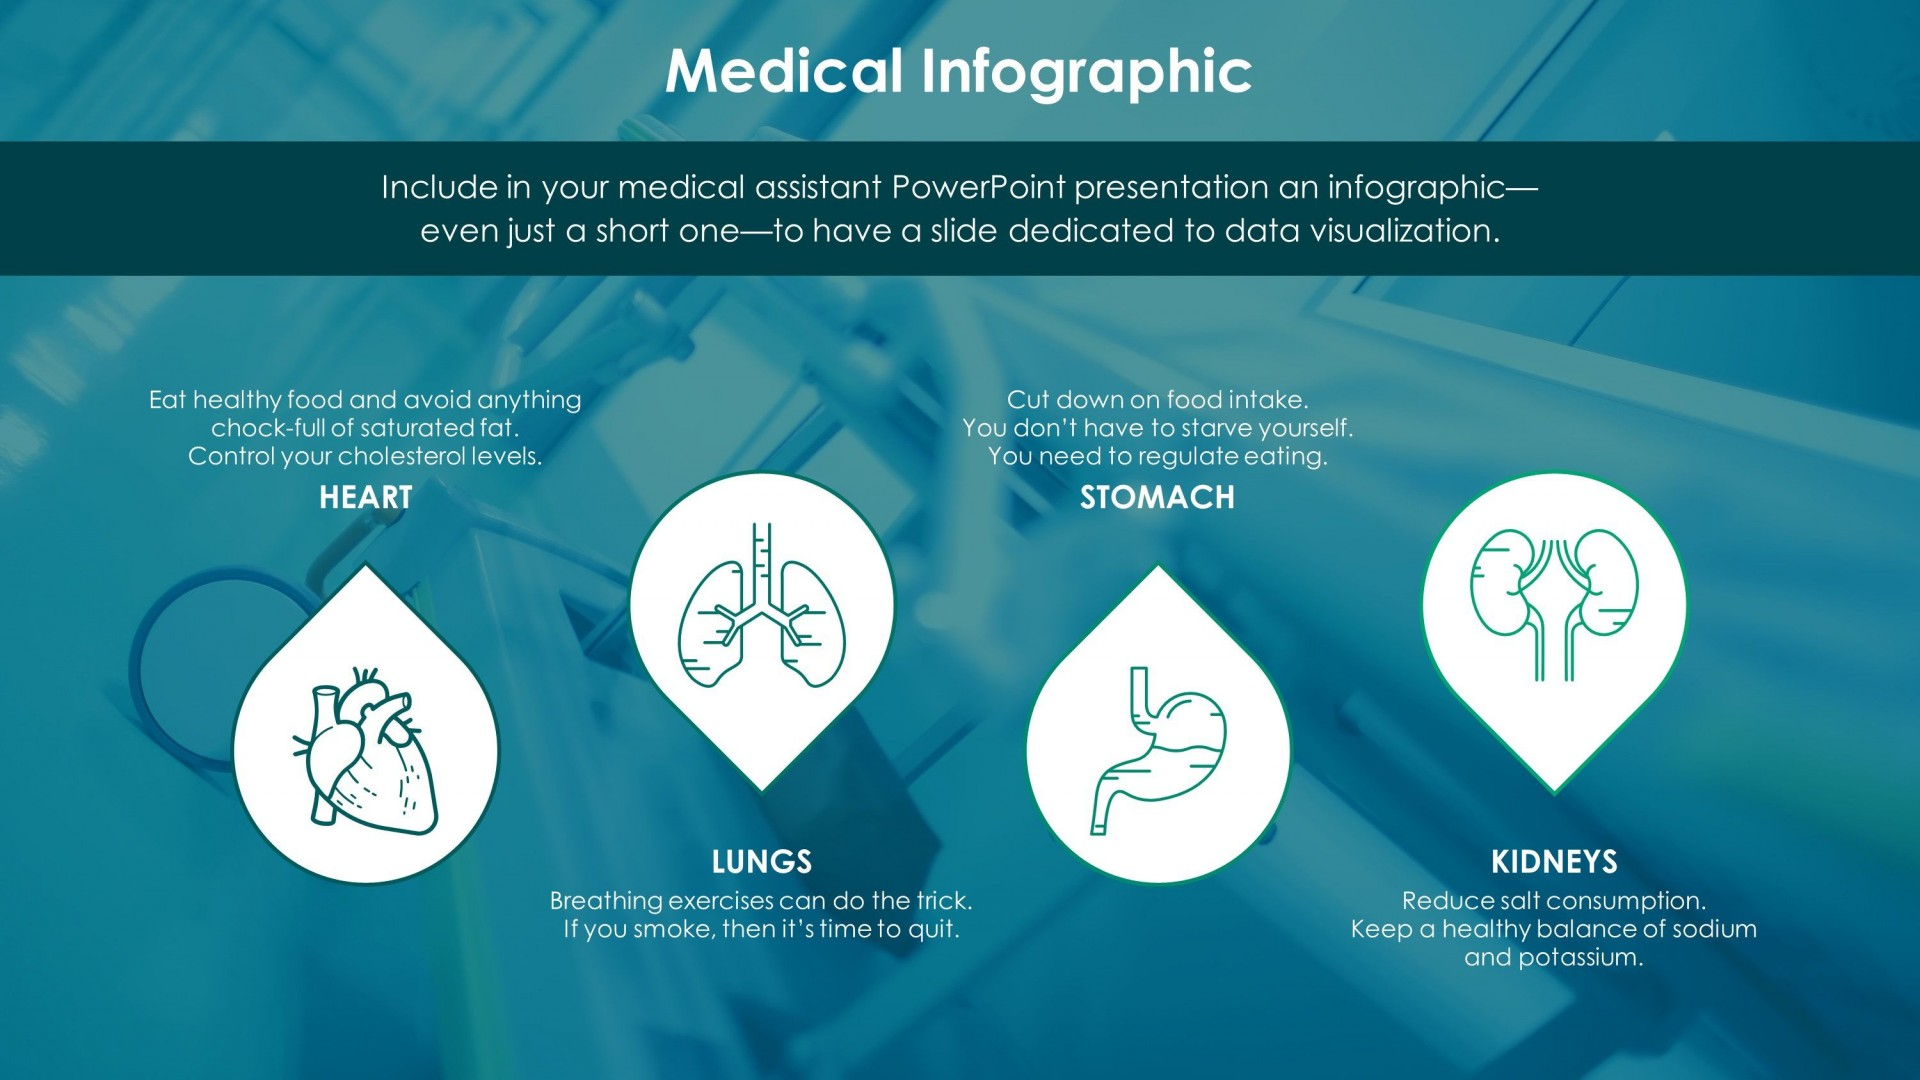 004 Singular Free Health Powerpoint Template Idea  Templates Related Download Healthcare Animated1920